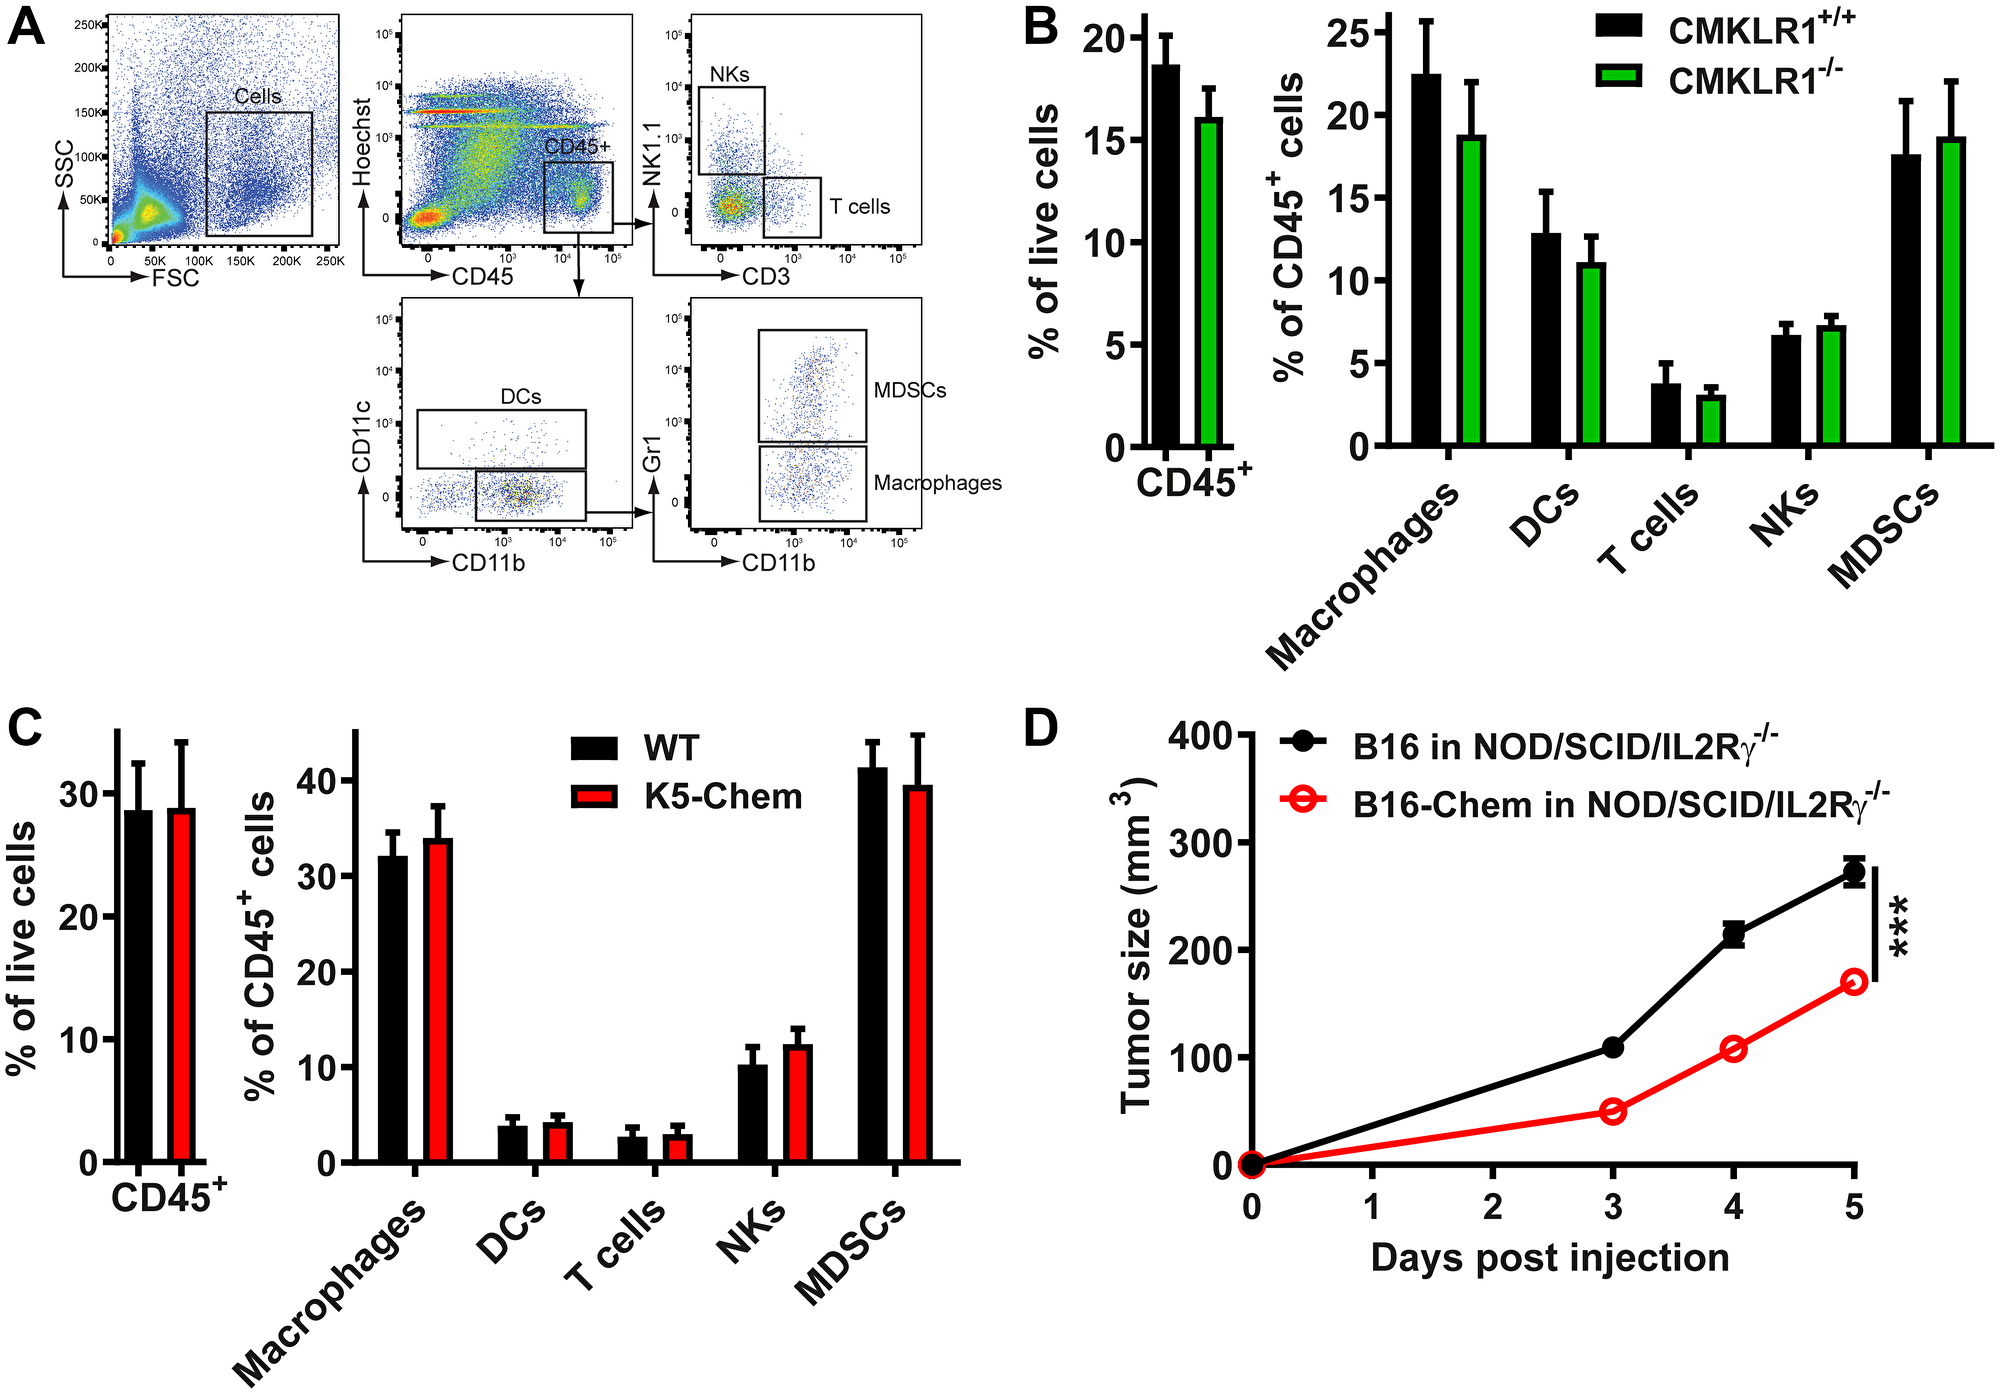 The anti-tumoral effect of chemerin is unrelated to leukocyte recruitment.